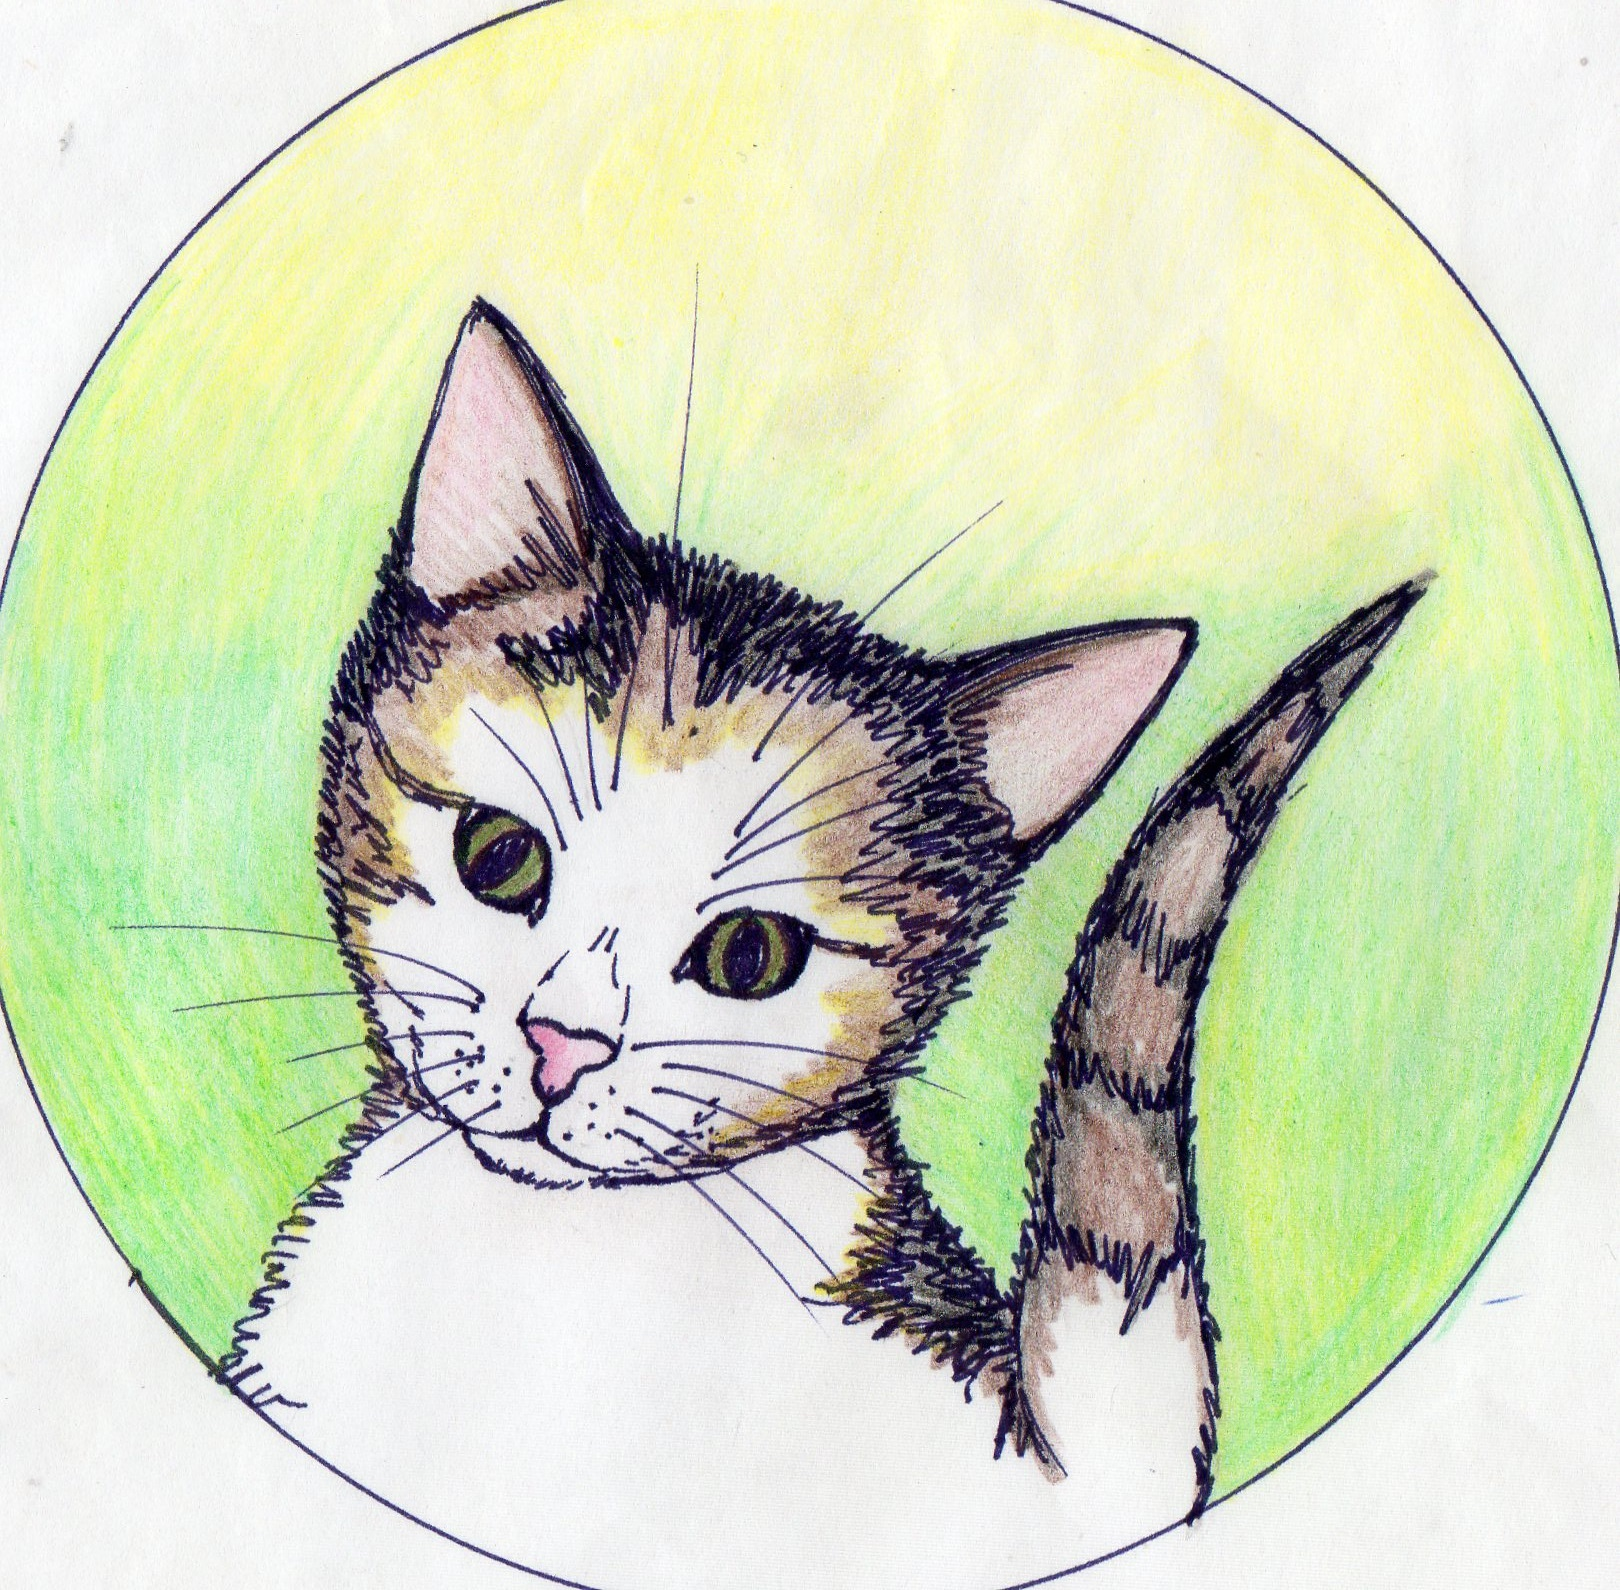 make ANY drawing or ilustration for you